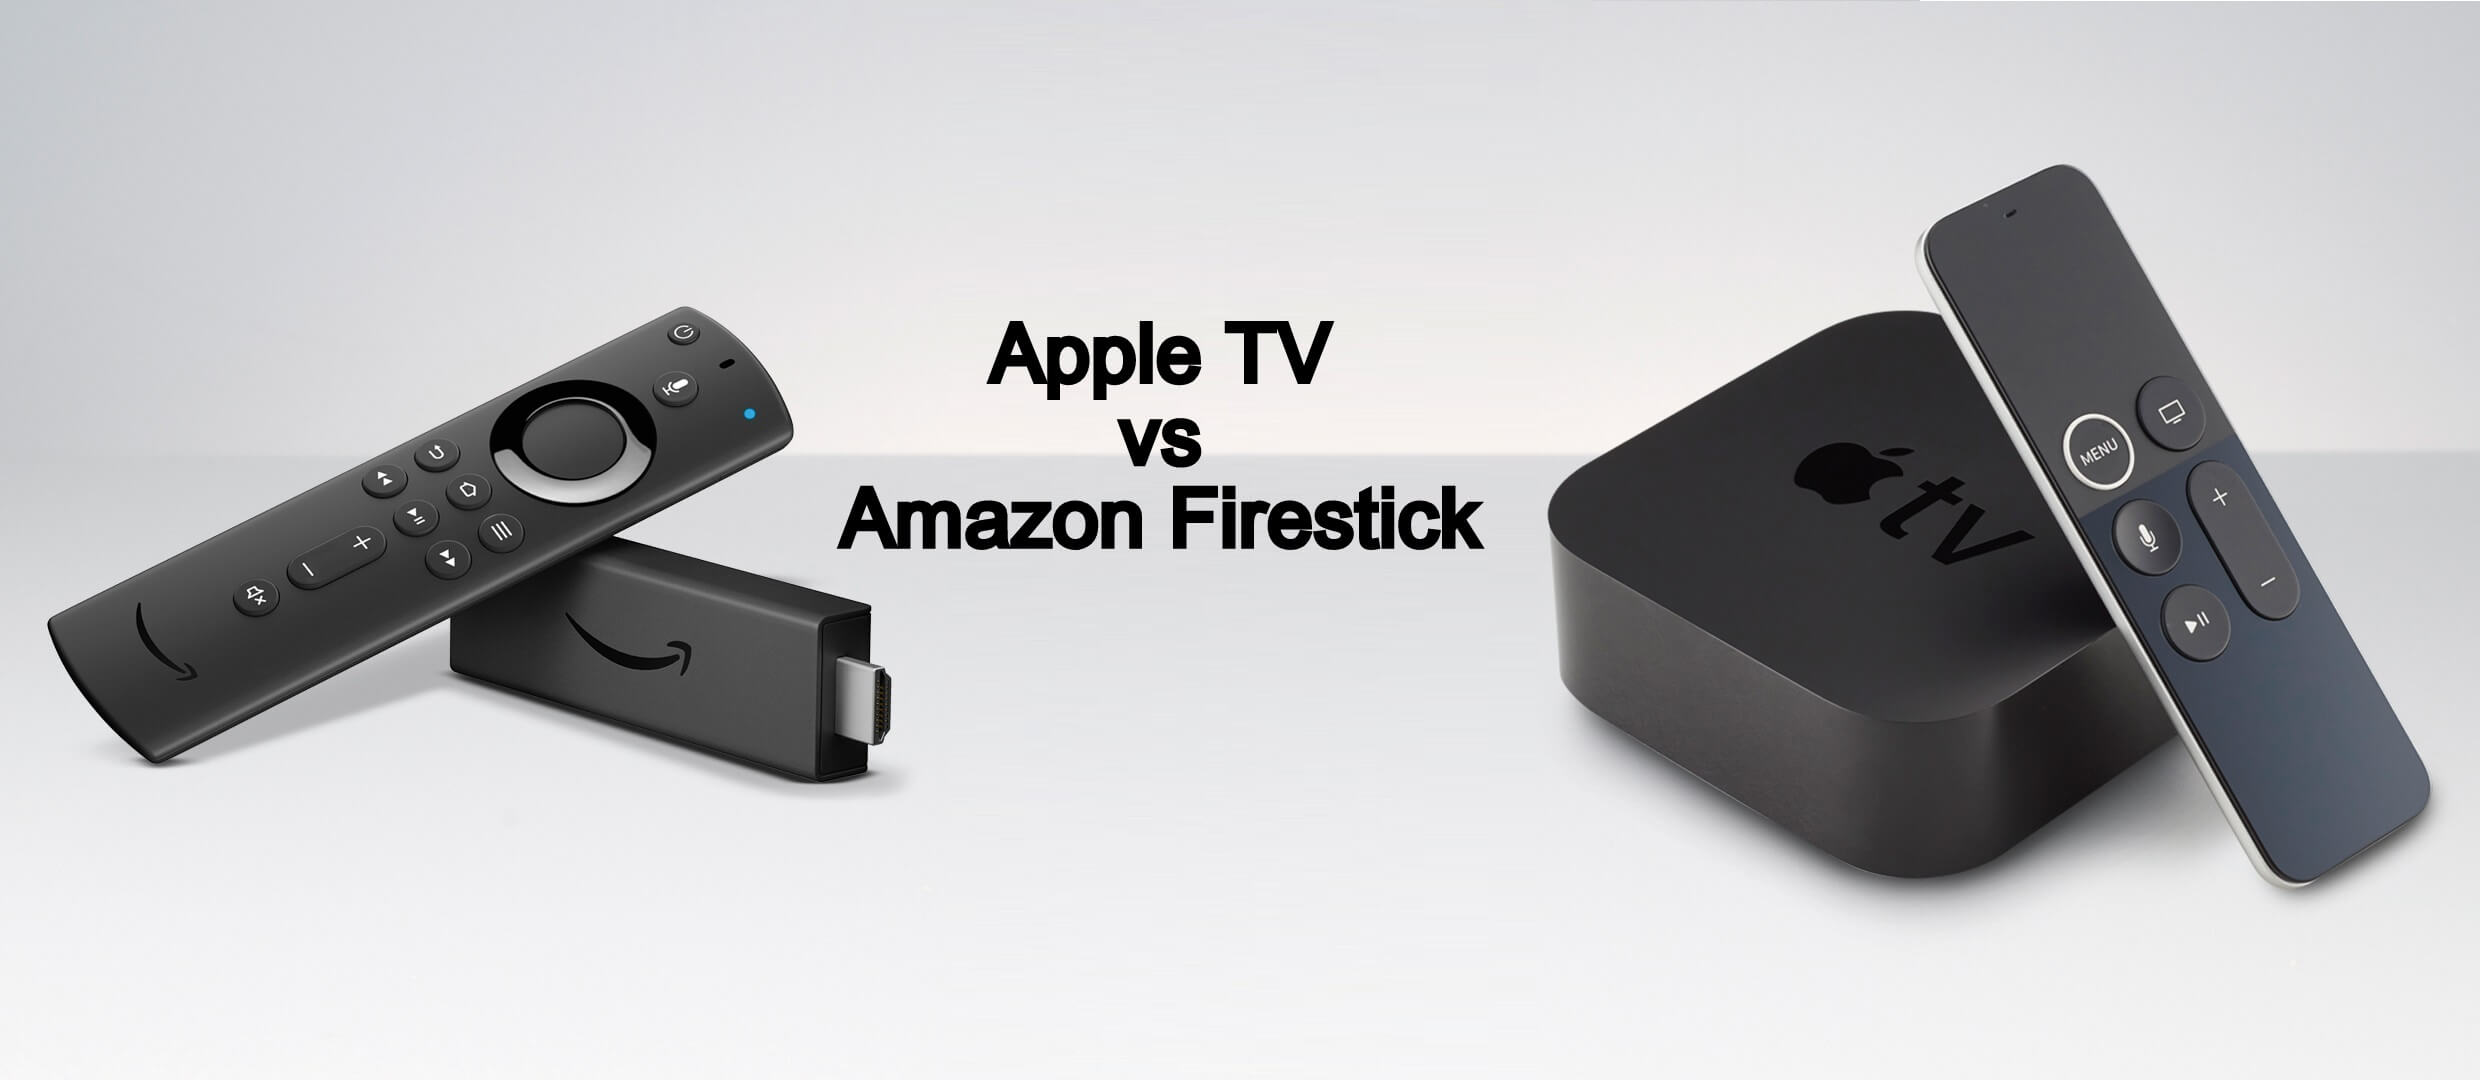 Apple TV vs Amazon Firestick: Which one to choose?